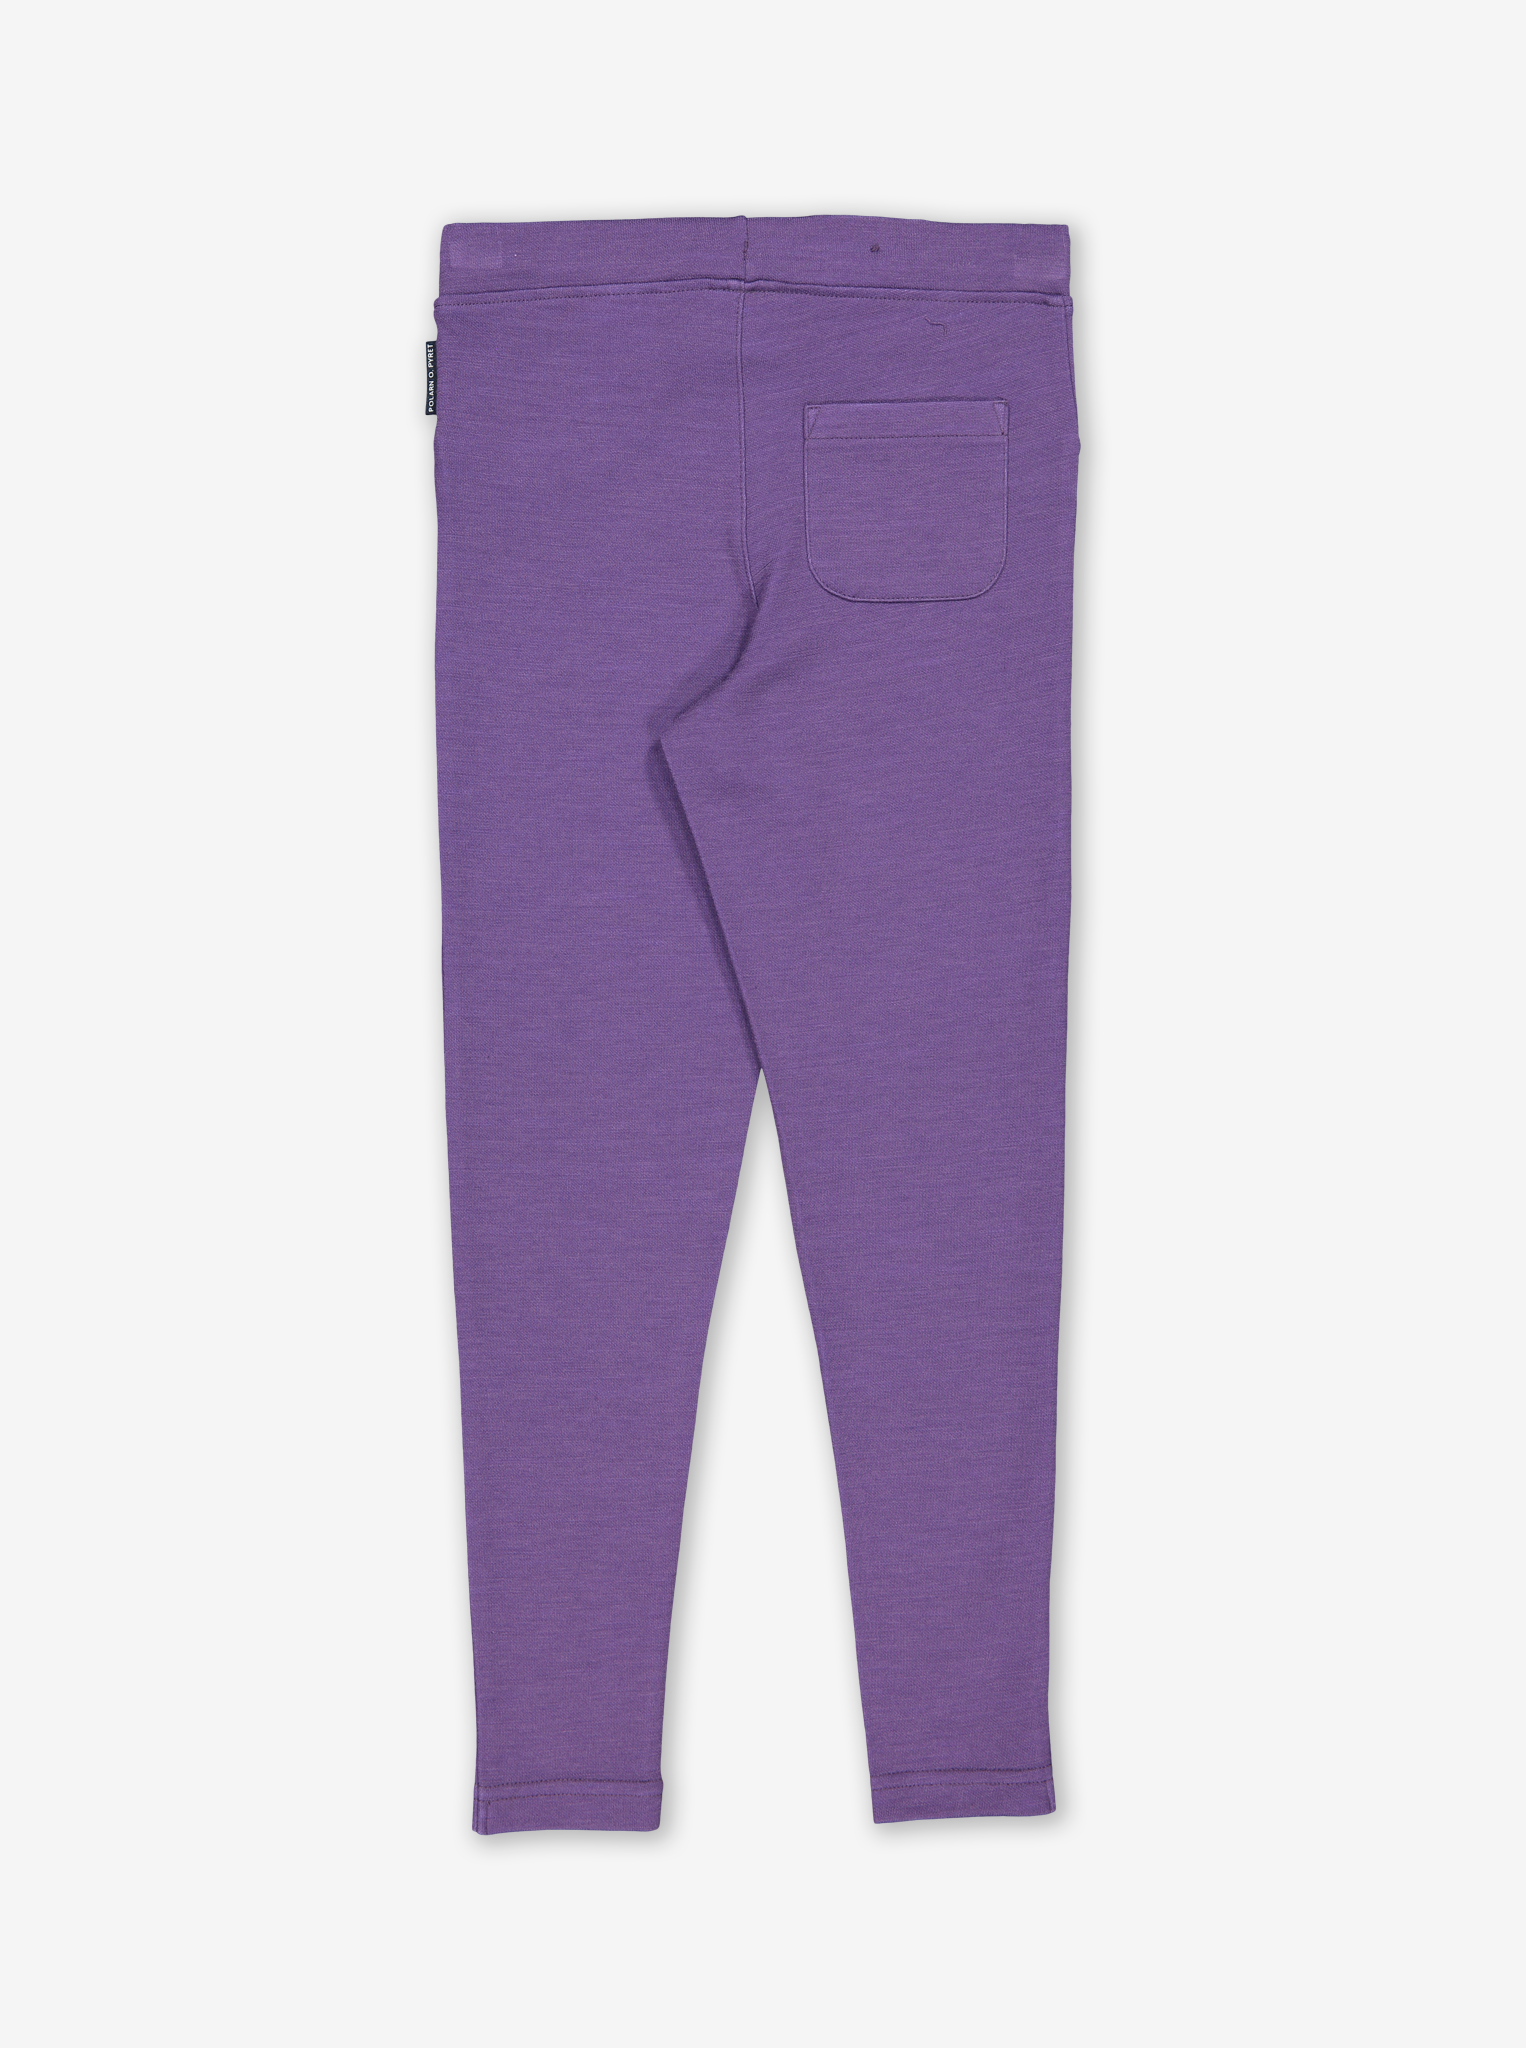 Cotton Lined Merino Kids Leggings